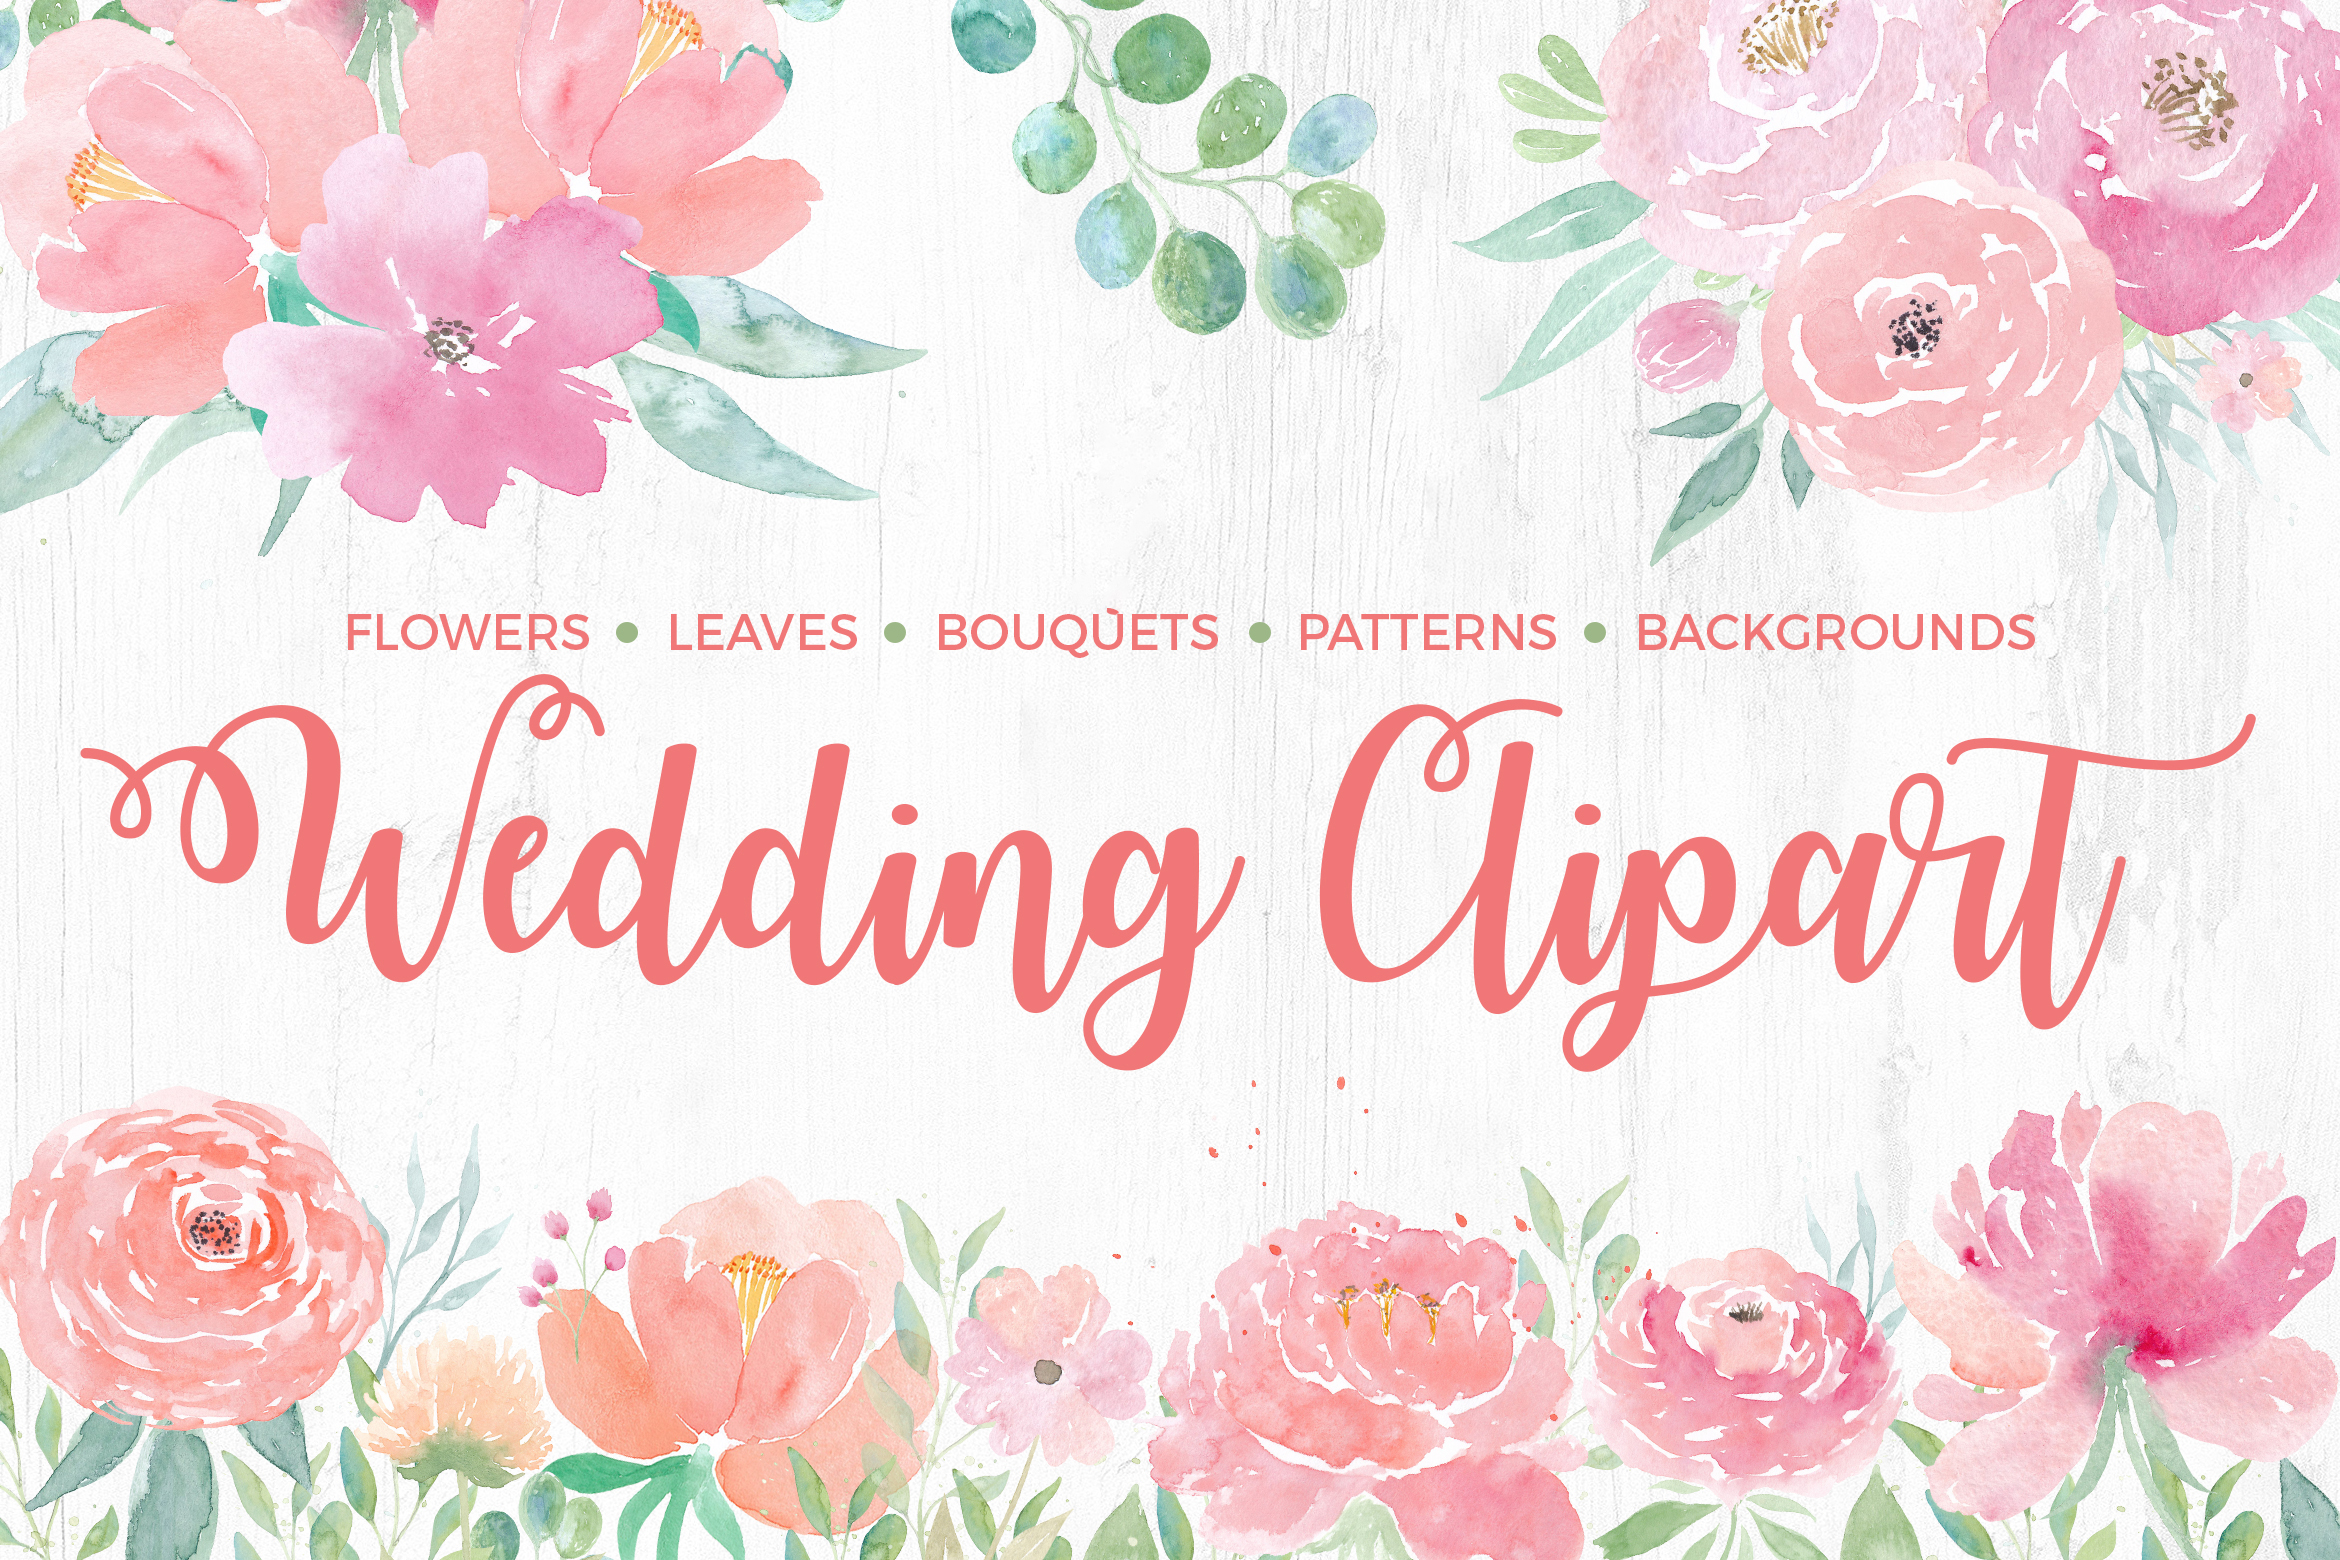 Flower wedding. Watercolor clipart flowers textures